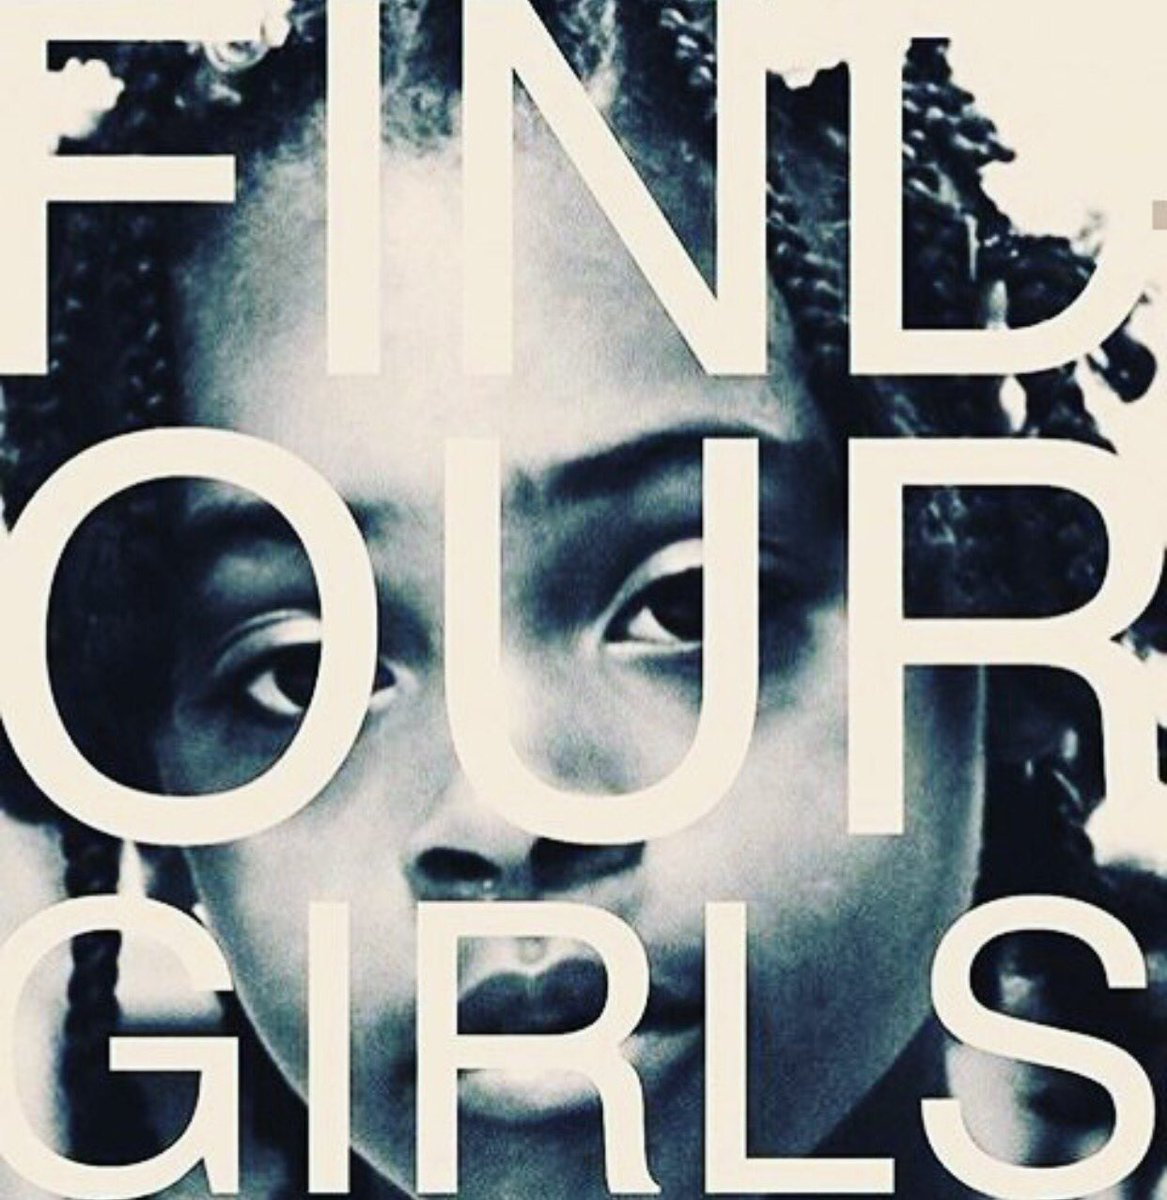 Our girls need our protection and love. Let\'s stay vigilant and keep our kids safe. #StayWoke